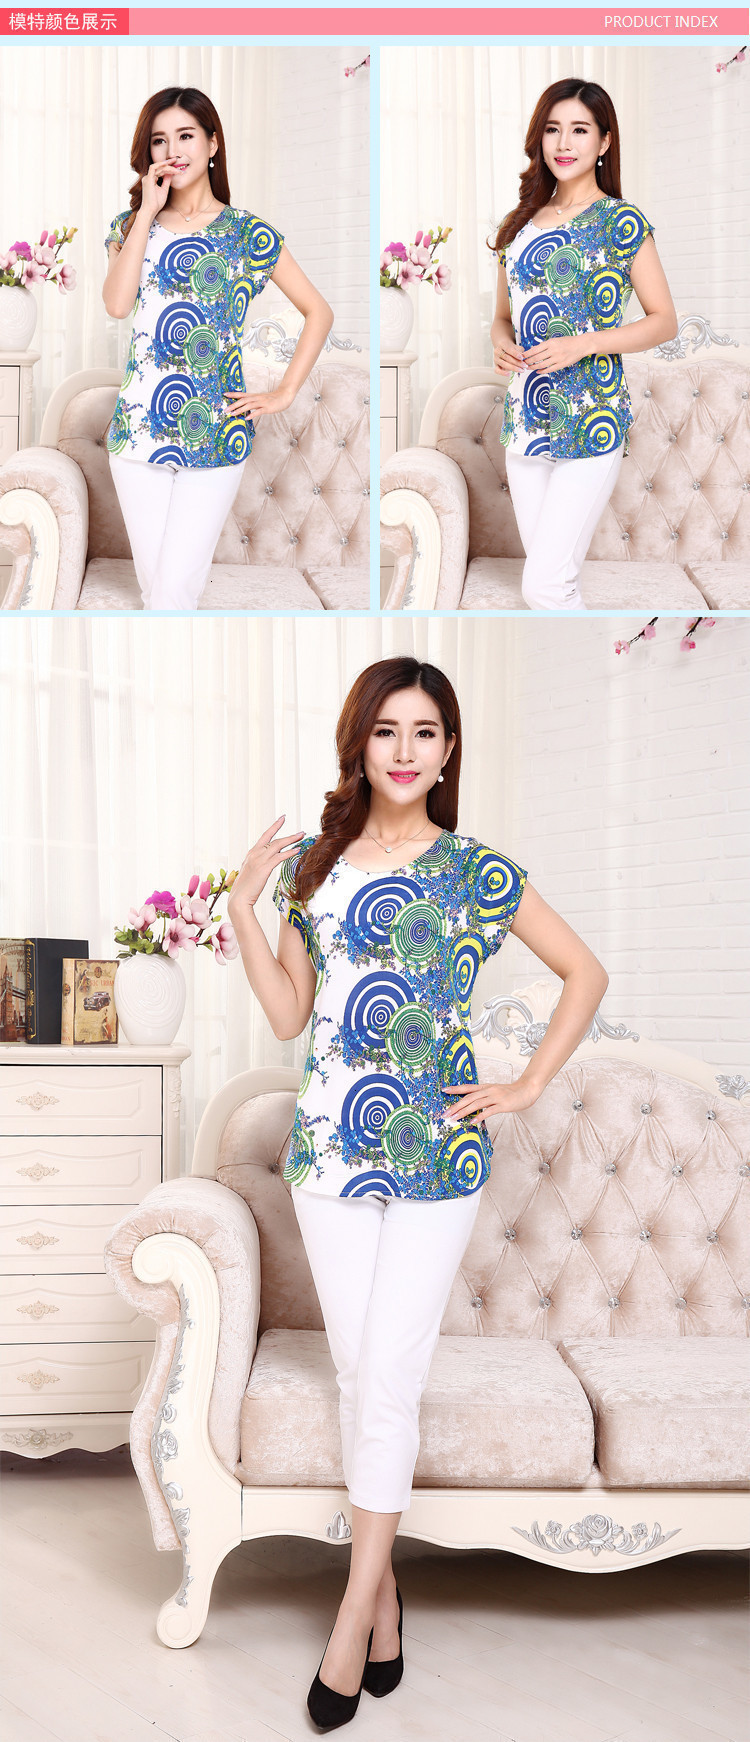 H2af4a7063fb5416d87bc9c854426ed2fJ - 5XL Women Ladies Clothing Tops short Sleeve printing Shirts Casual Boat anchor Blouse Silk female woman clothes plus size